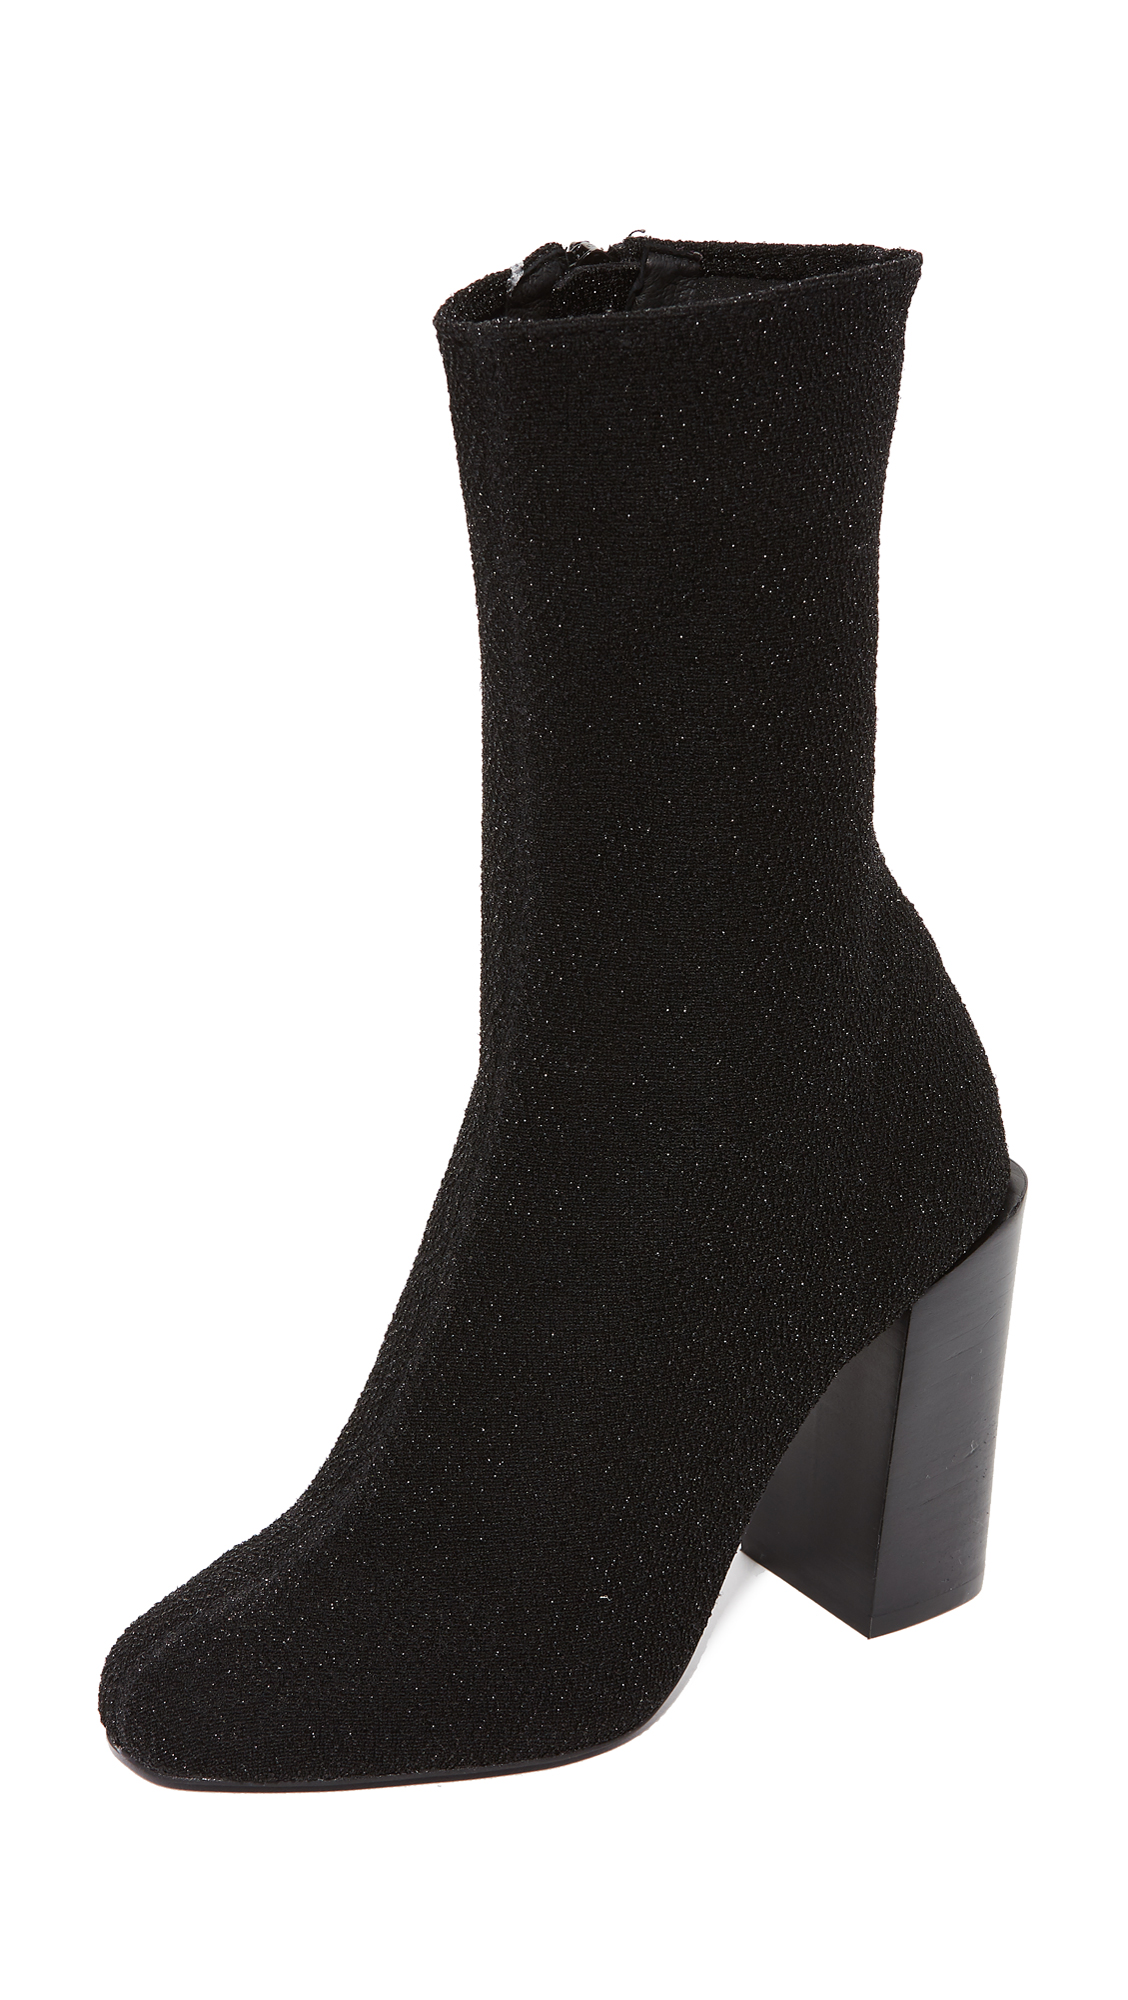 Jeffrey Campbell Perouze Stretch Ankle Booties - Black Lame